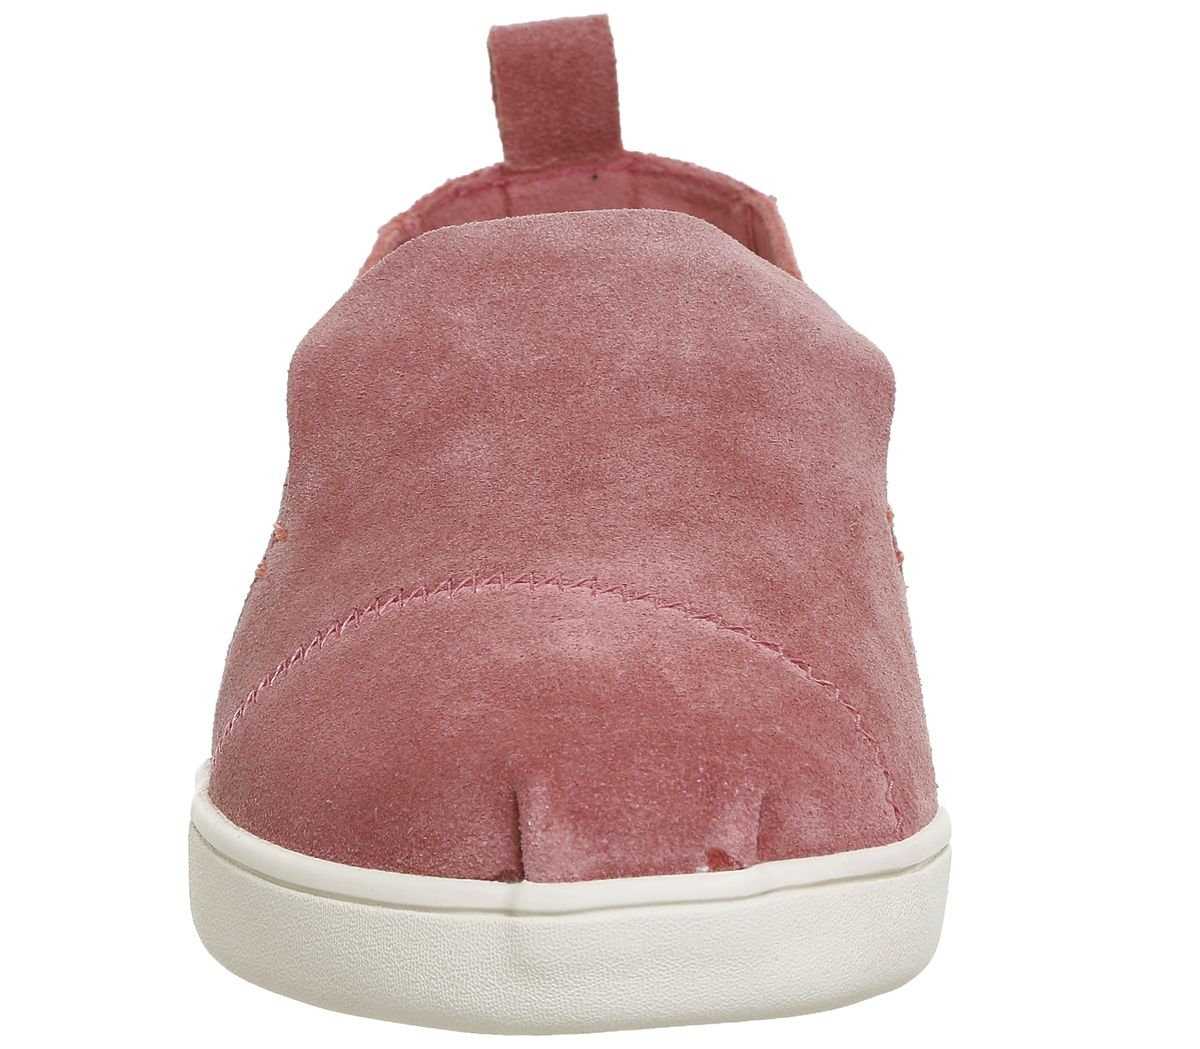 ed015dbcfc8 Toms Deconstructed Alpargata Pink Suede - Flats